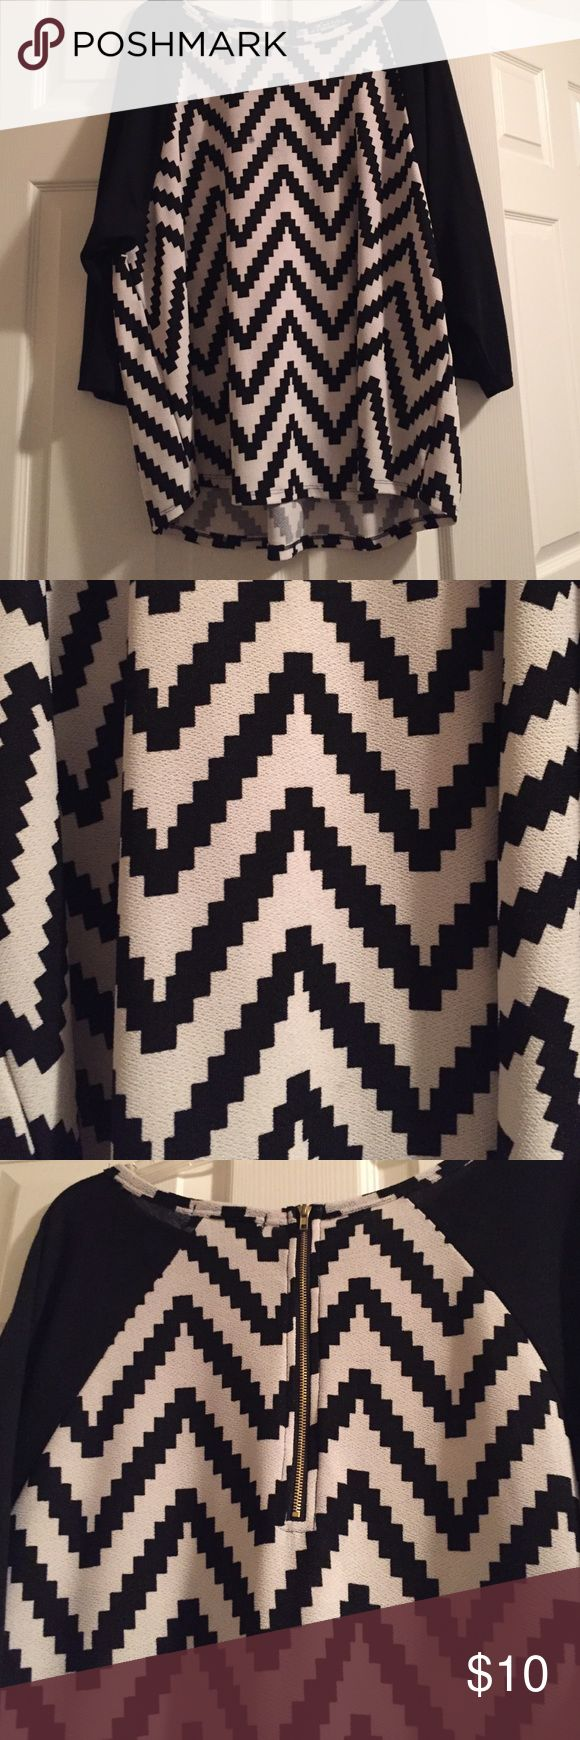 Cute chevron blouse! Super cute black and white chevron blouse. Only worn once! Only default is tiny black stain (dime size) on it. (Shown in fourth picture). The one time I wore it, a scarf covered it up! Tops Blouses